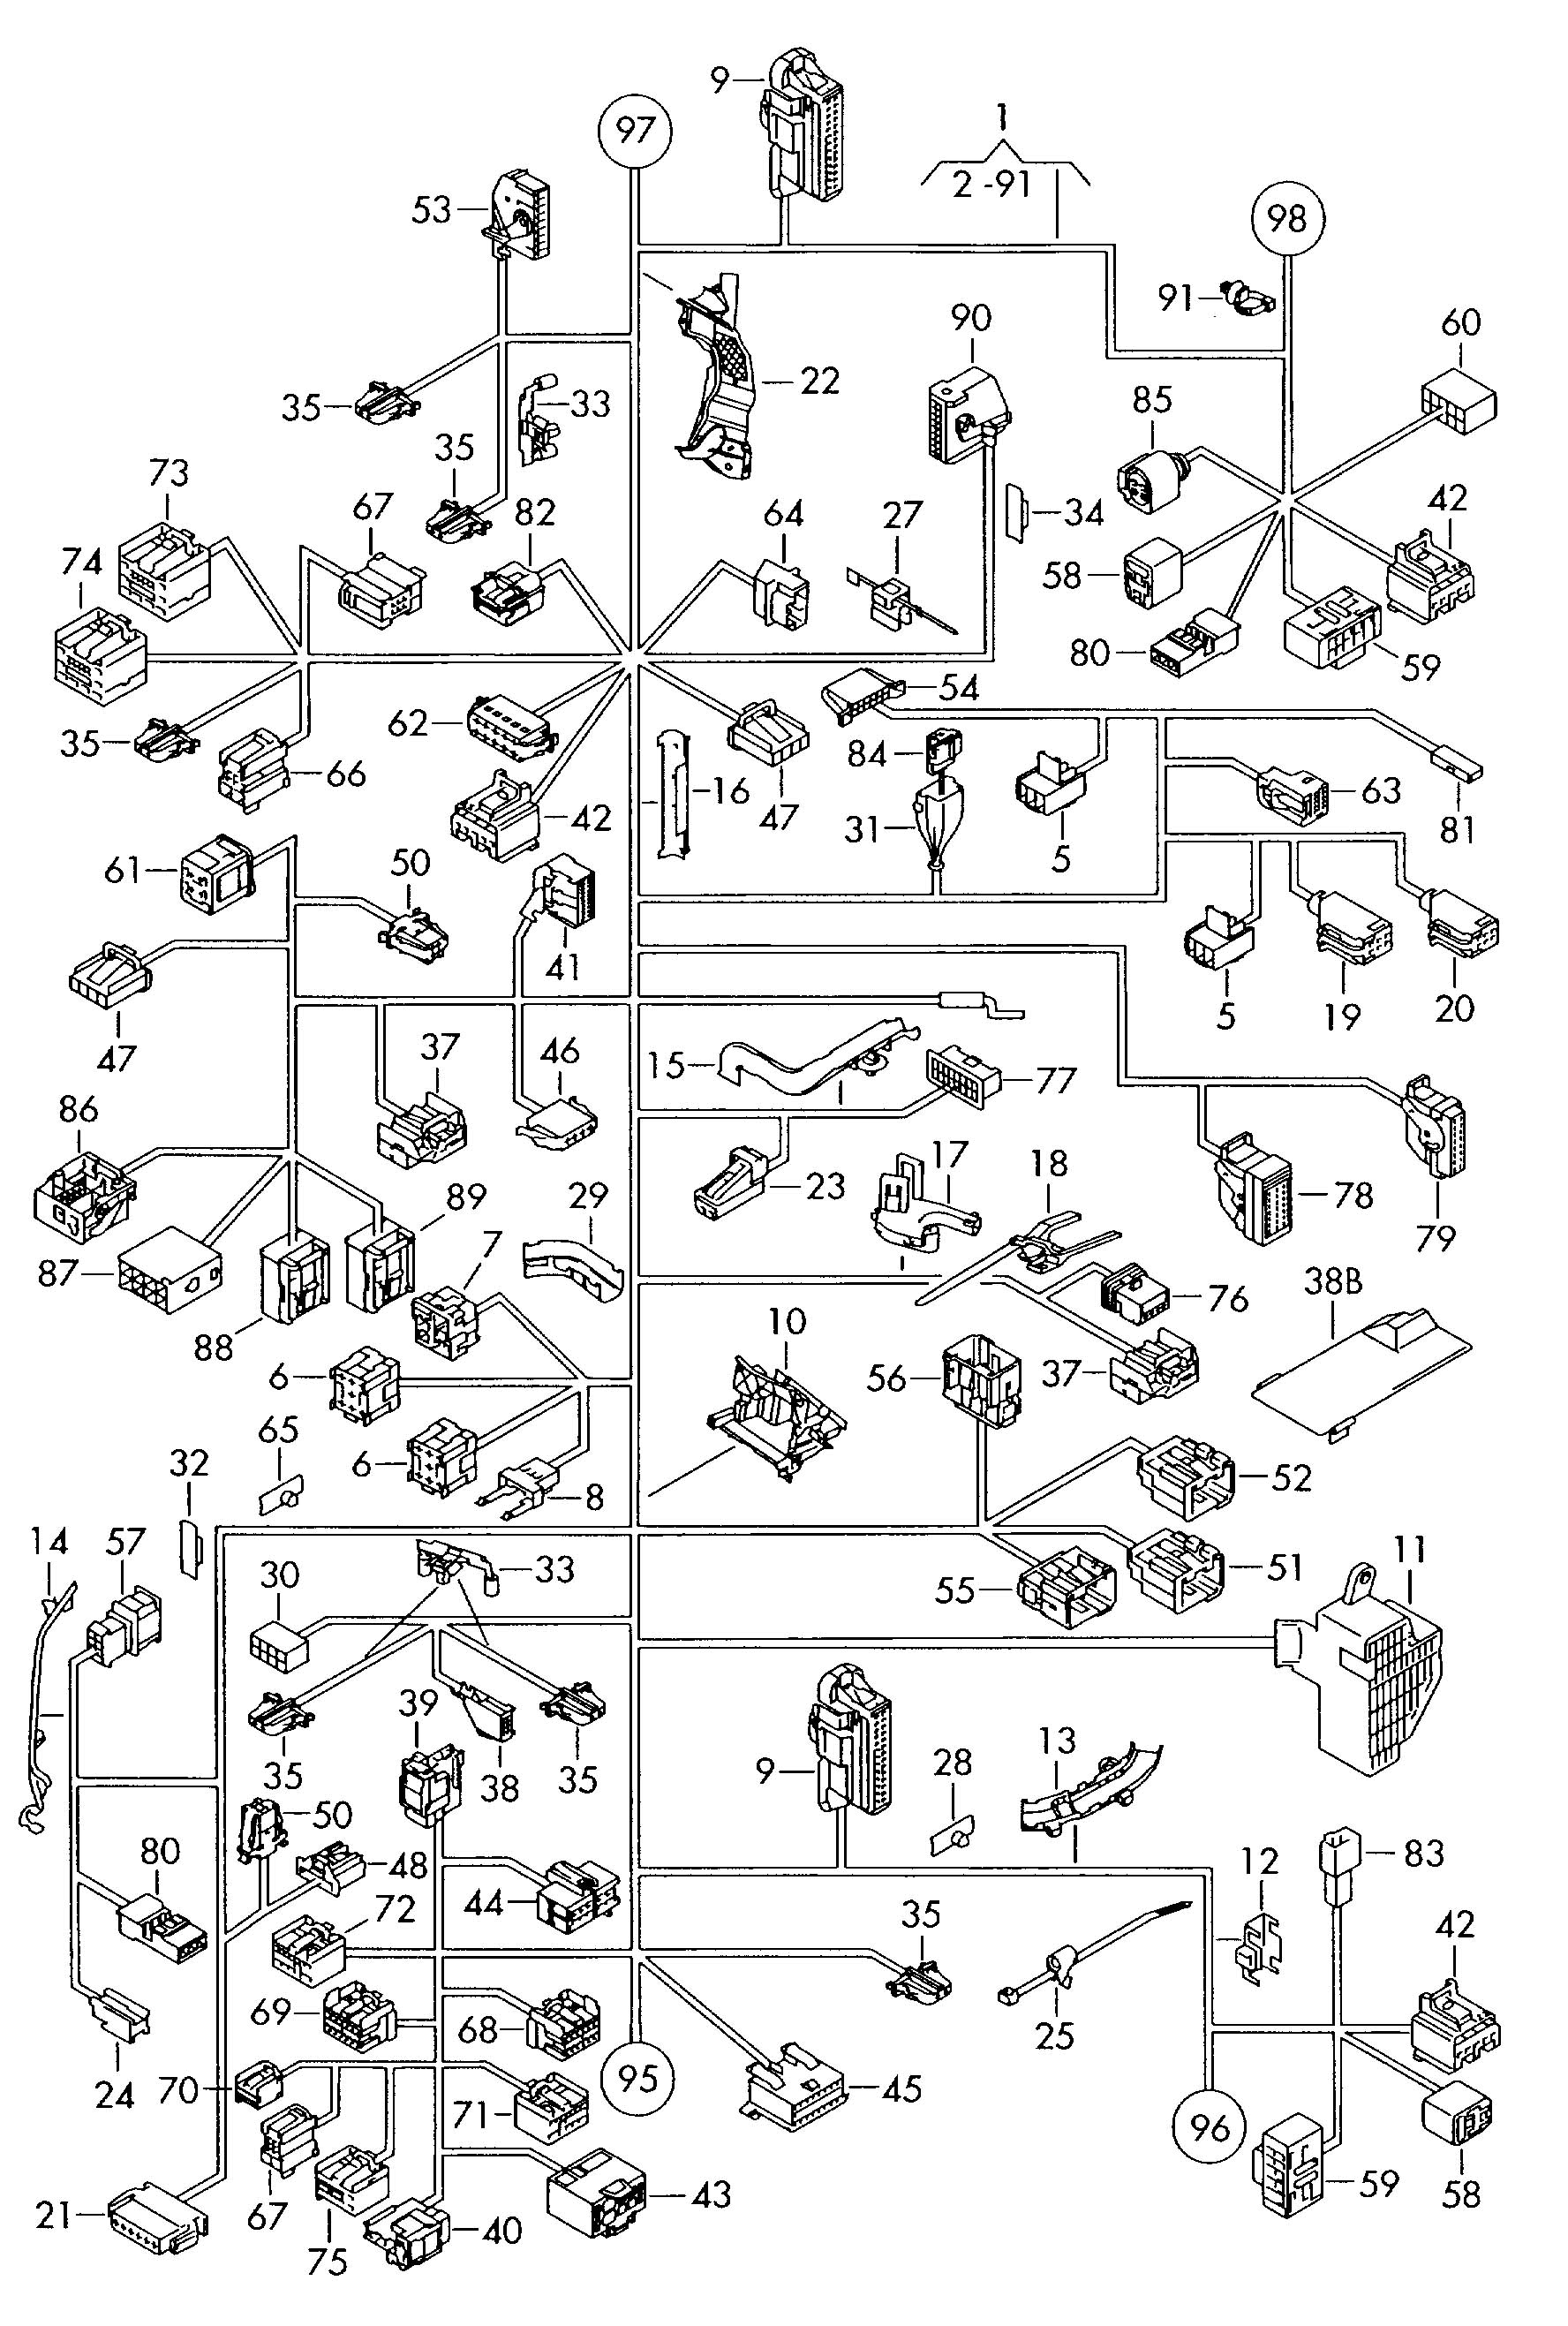 5cjy2 Volkswagen Passat 2 0t Need Fuse Box Diagram 2008 furthermore 2011 Vw Jetta Owners Manual Pdf moreover 08 Mini Fuse Box in addition 2006 Vw Touareg Engine Diagram together with 2001 Vw Beetle Thermostat Location. on 2012 volkswagen jetta tdi fuse box diagram